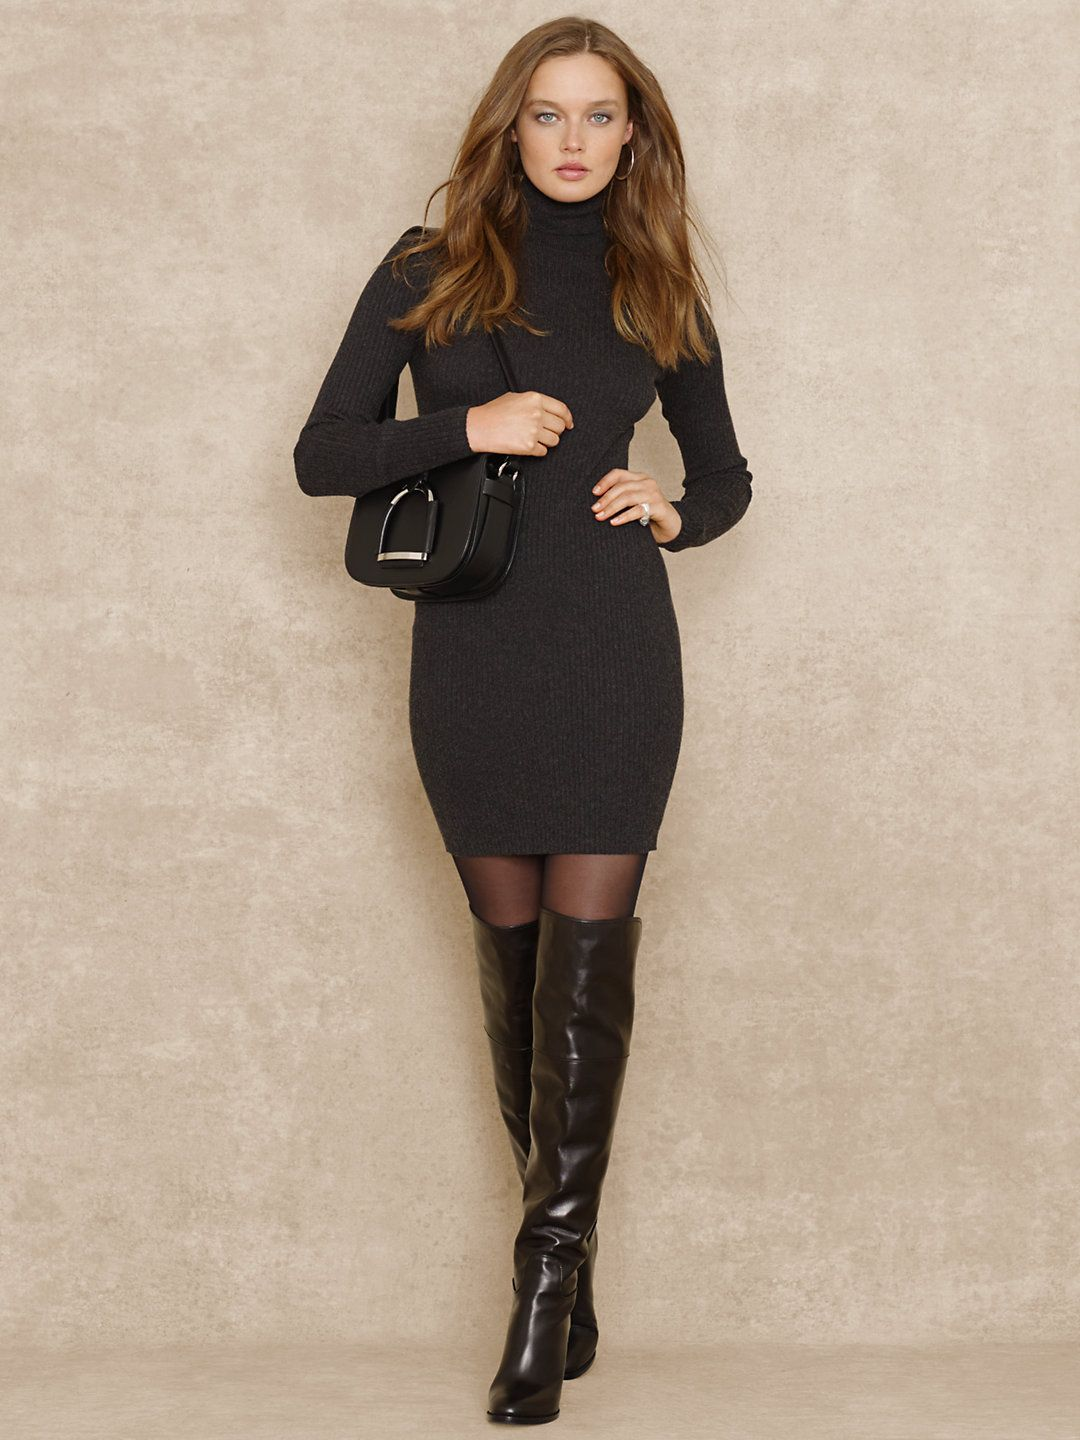 646fb6b20b1 Turtleneck Sweater Dress - Short Dresses Dresses - RalphLauren.com ...